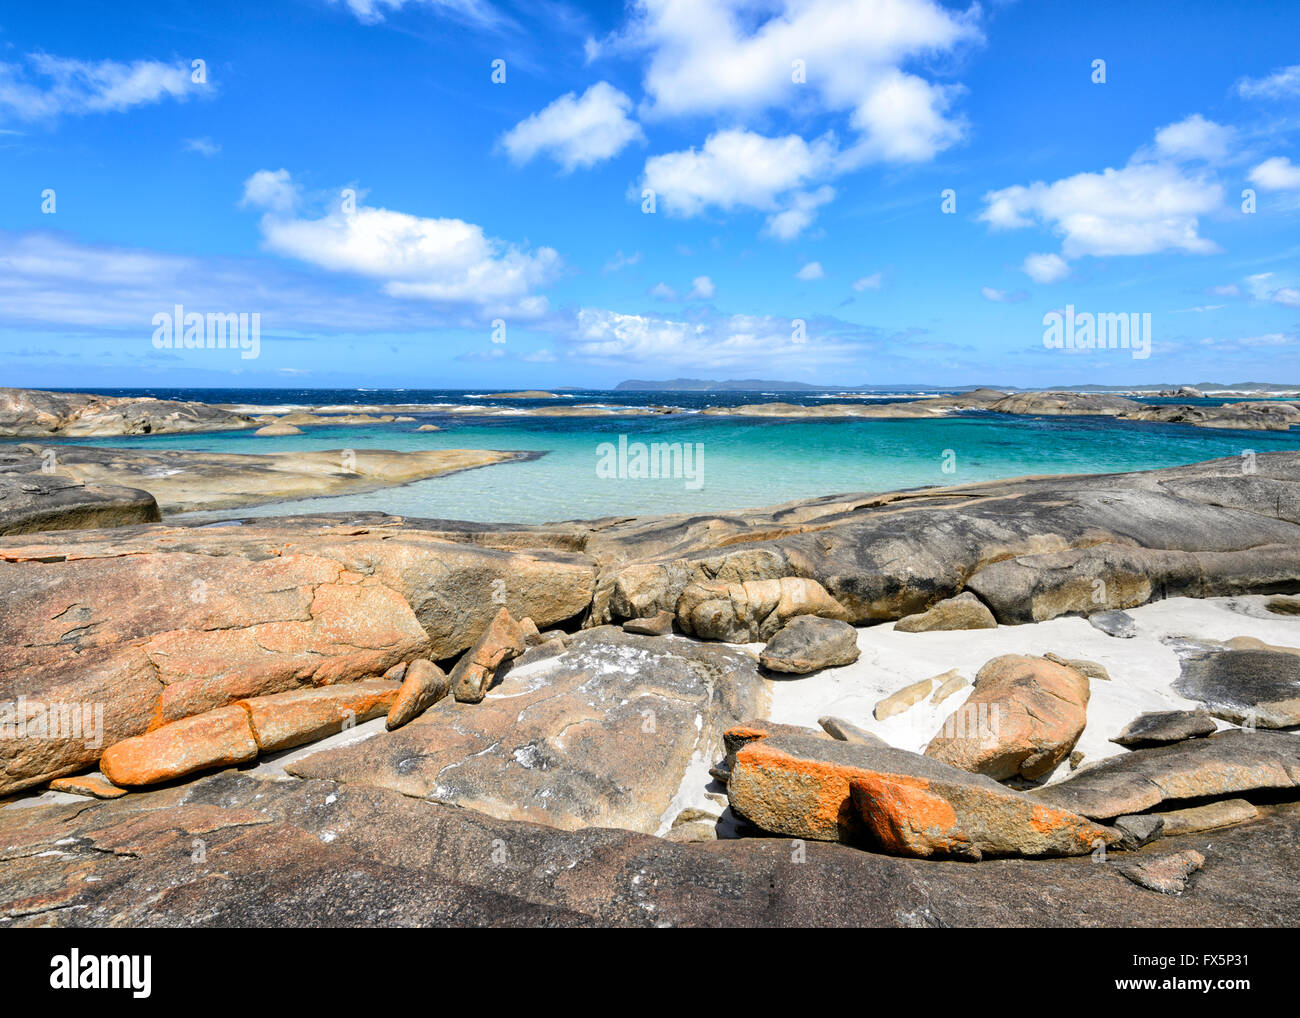 Denmark Landscape High Resolution Stock Photography And Images Alamy